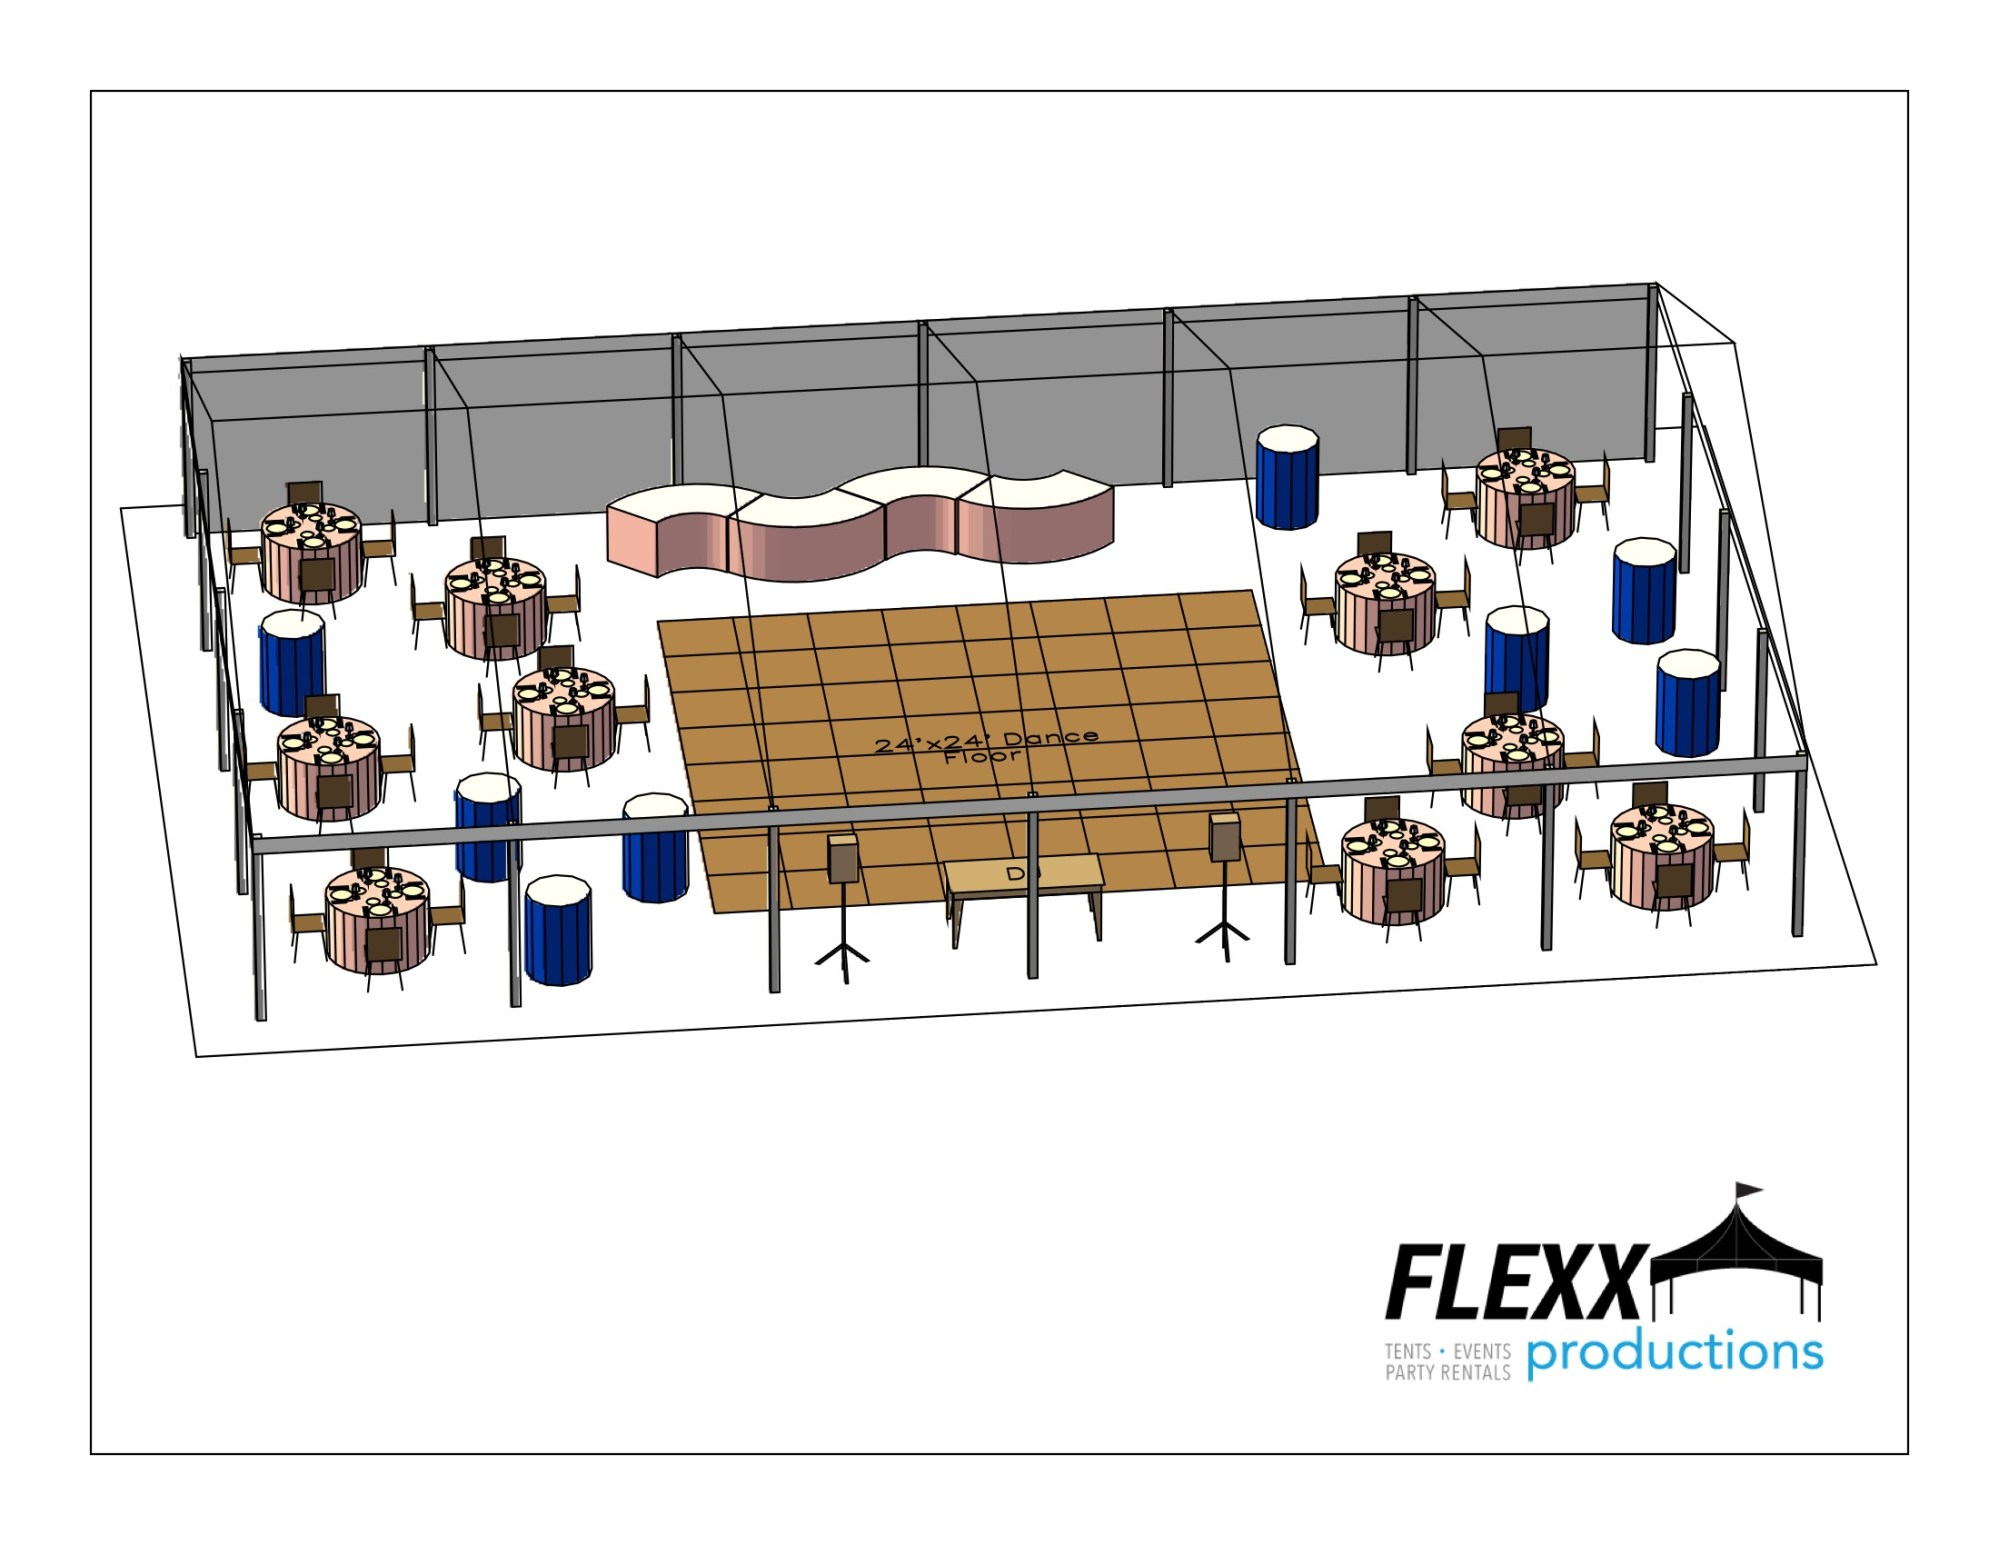 hight resolution of 40x60 flexx productions clearspan tent layout